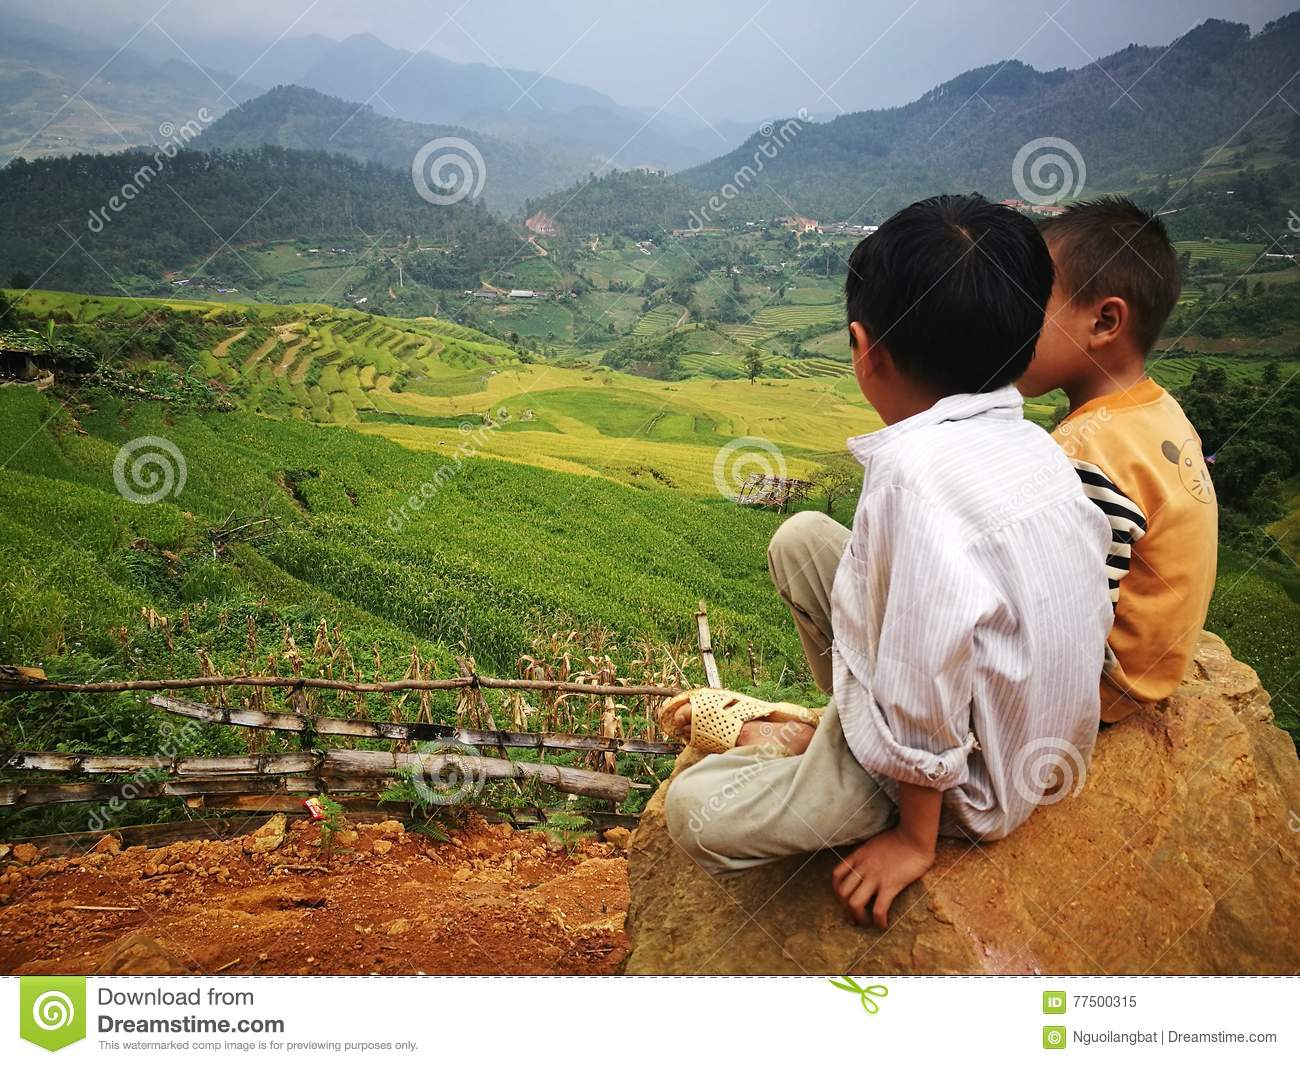 Hmong Miao minority children sitting on a rock at a valley of yellow rice paddy field